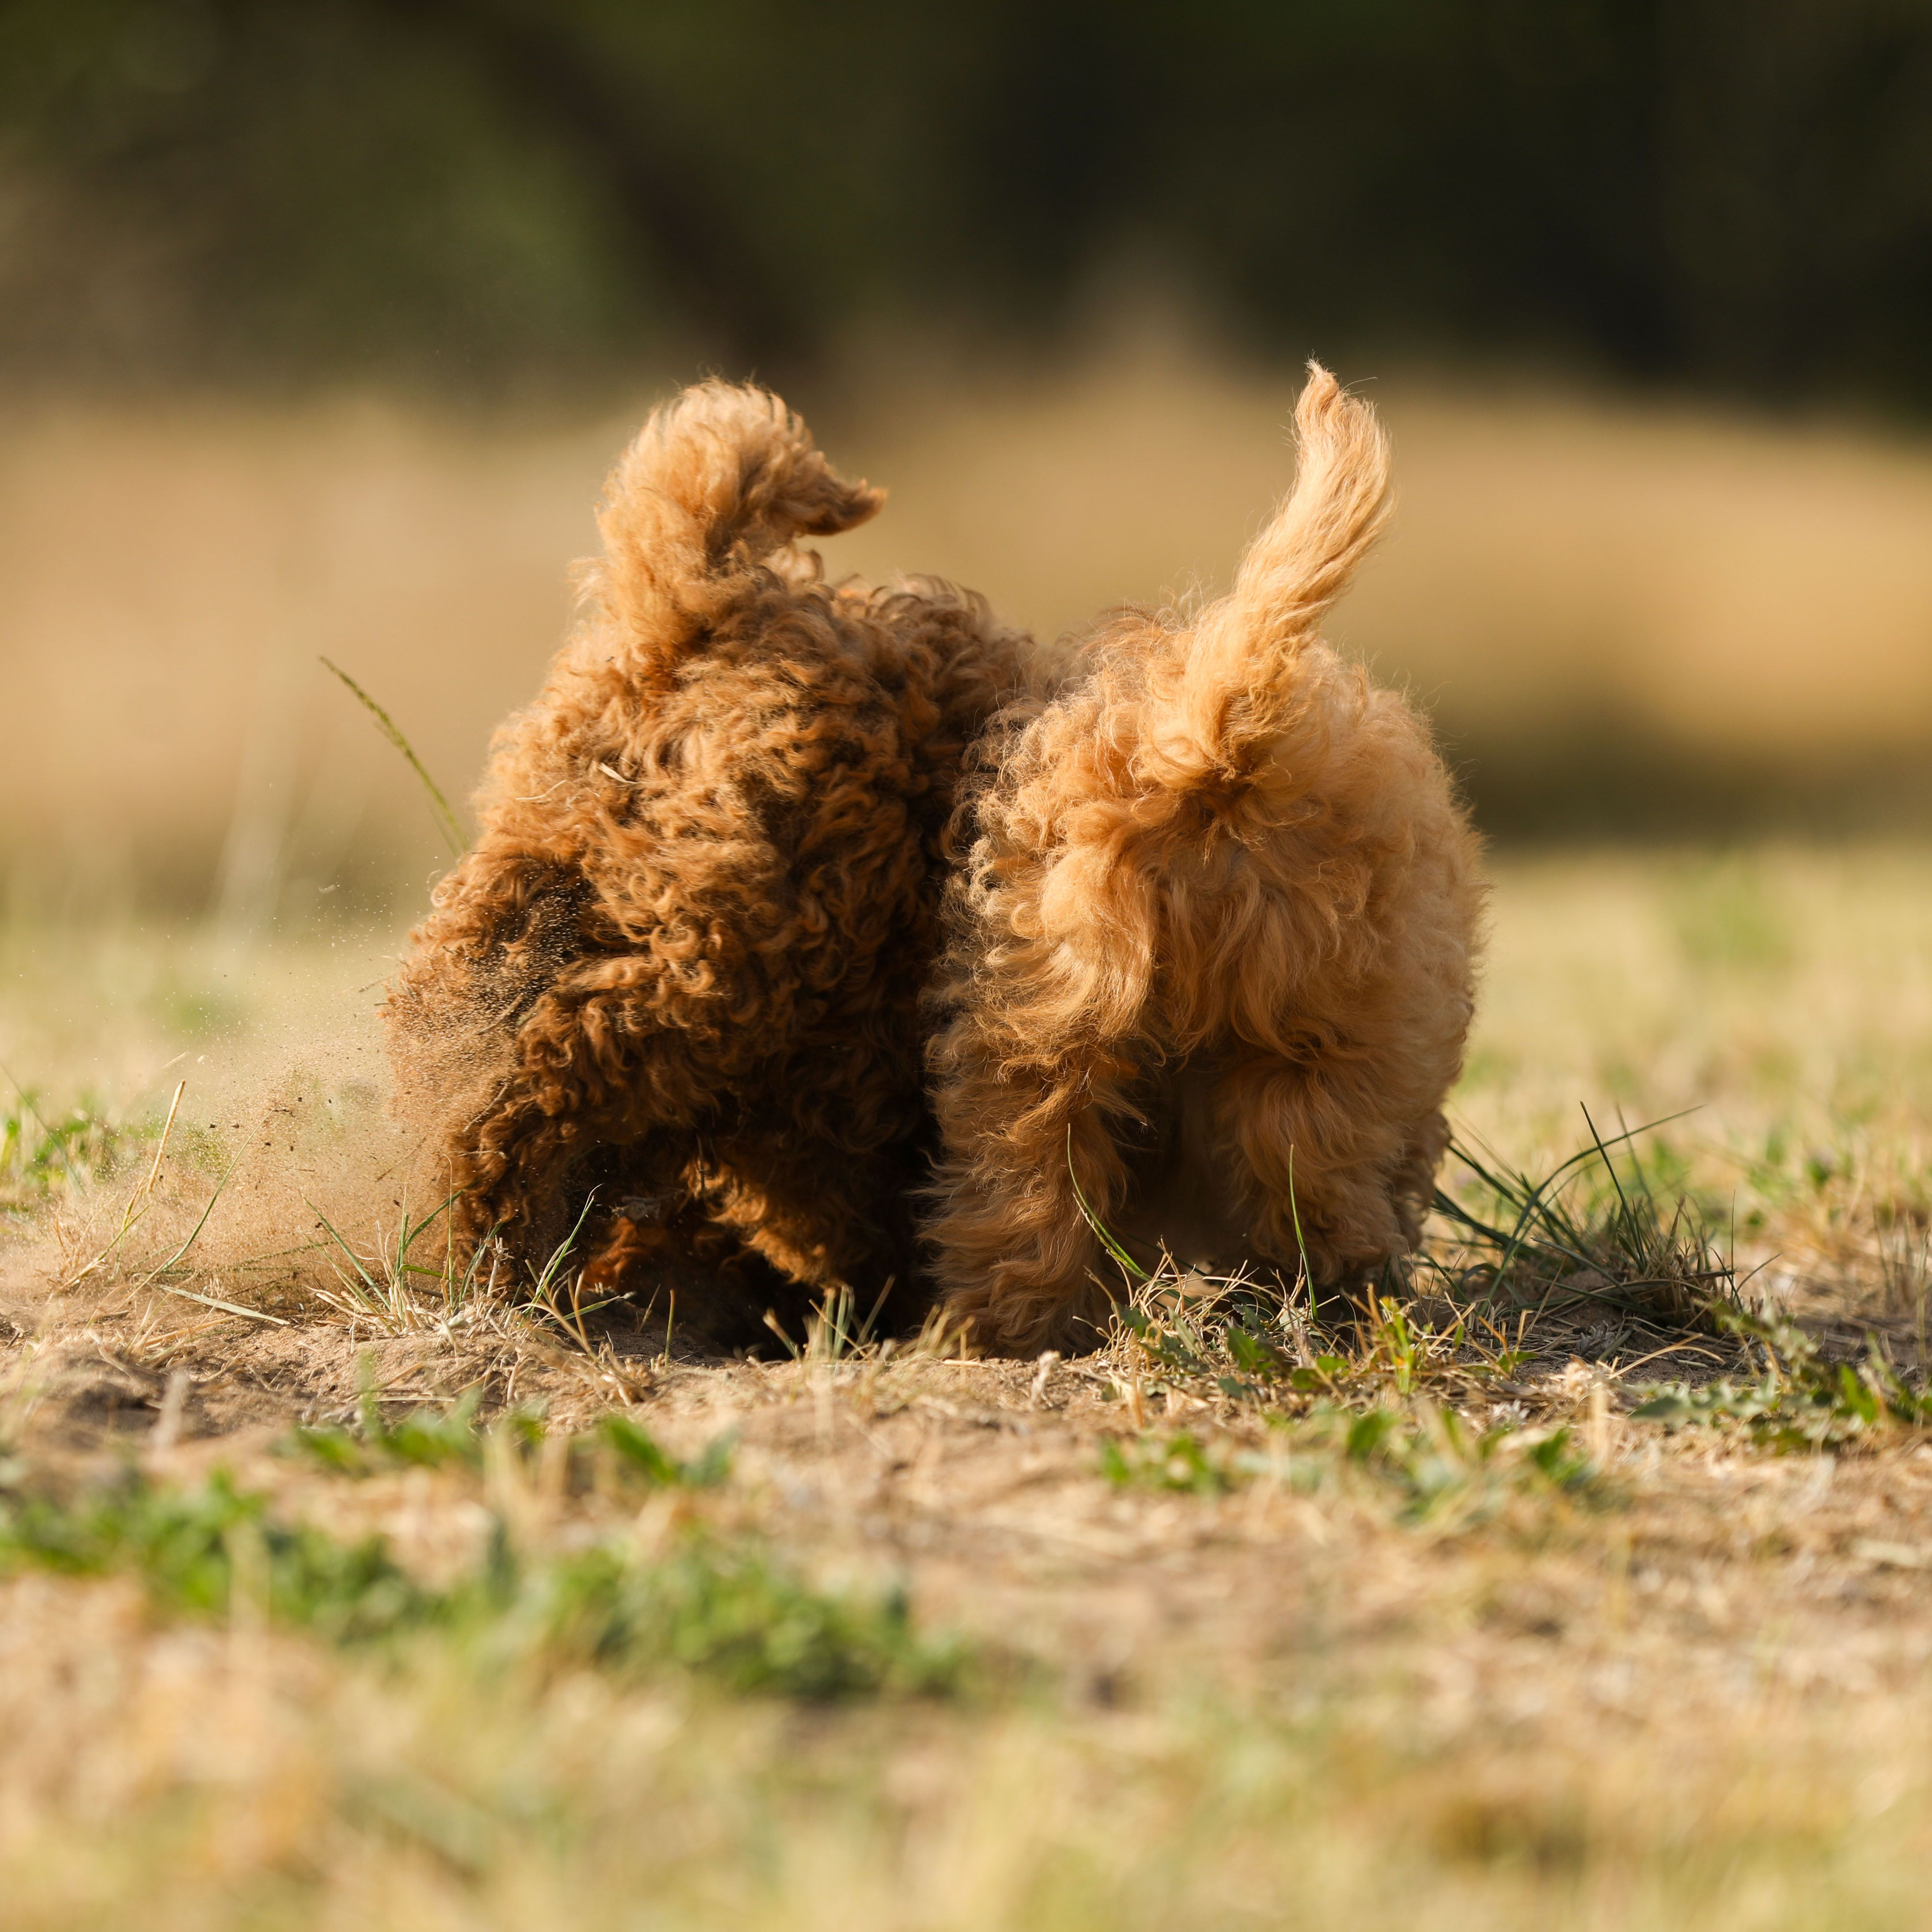 Cavoodle Puppy Bums Raggy Dogs Cavoodle Puppies Always Have Beautiful Fleecy Or Hypoallergenic Woollen Coats We Are A Dog Trainer Therapy Dogs Sporting Dogs